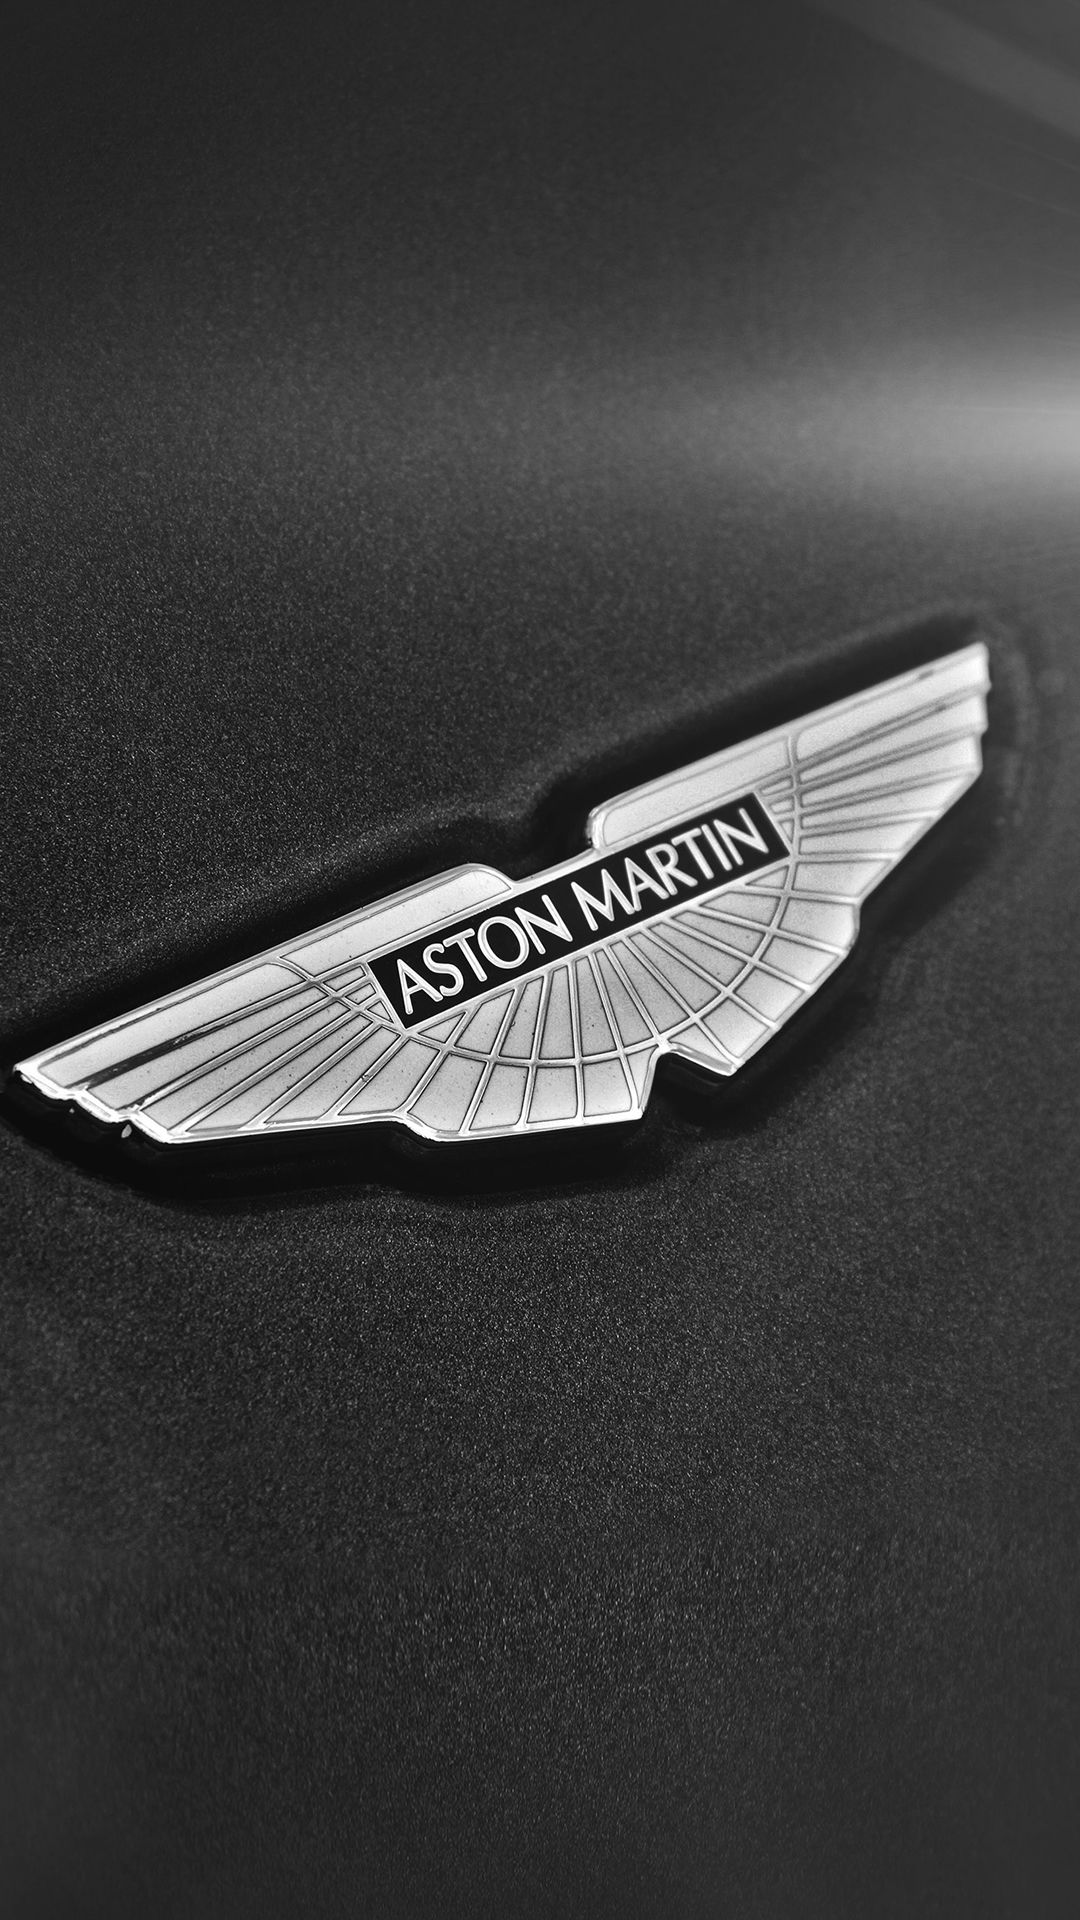 Simple Aston Martin Logo Dark Background Iphone 8 Wallpapers